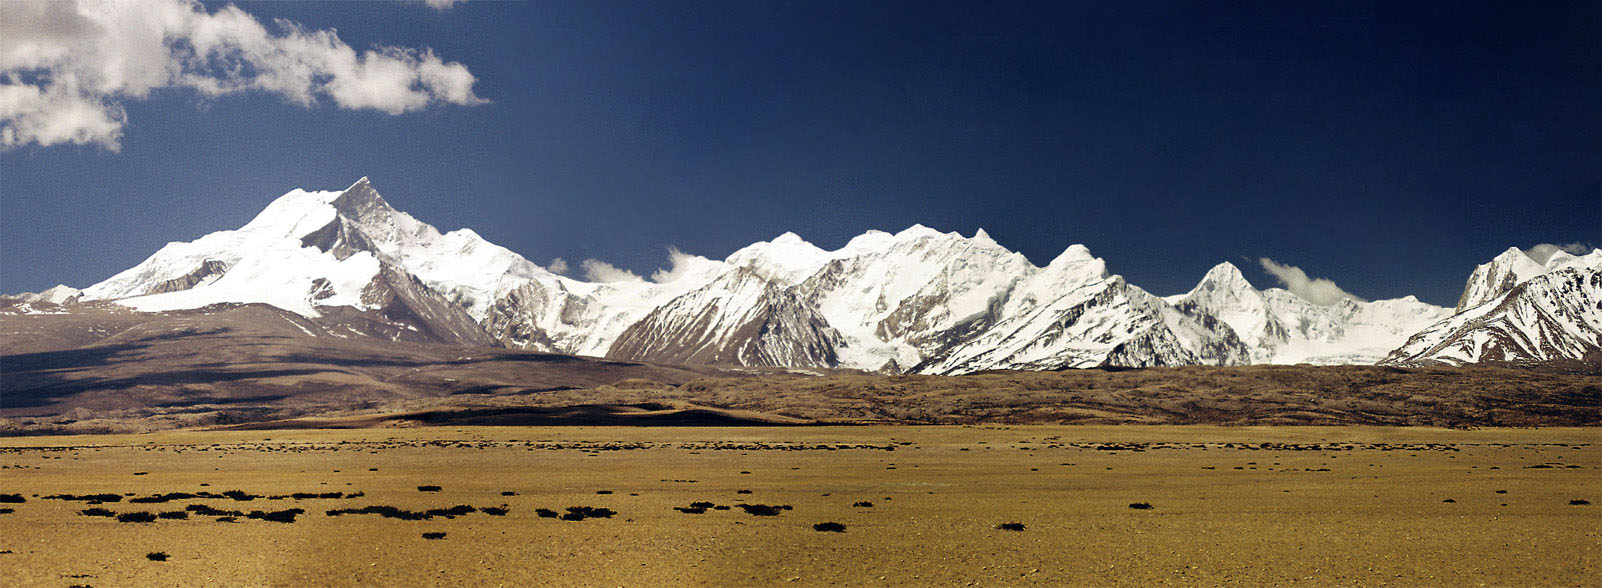 Mountain chain in Kailash area of Tibet. Source: . Credit: Frank Hackeschmidt,  Shot on 2006-07-14 Photo taken in 